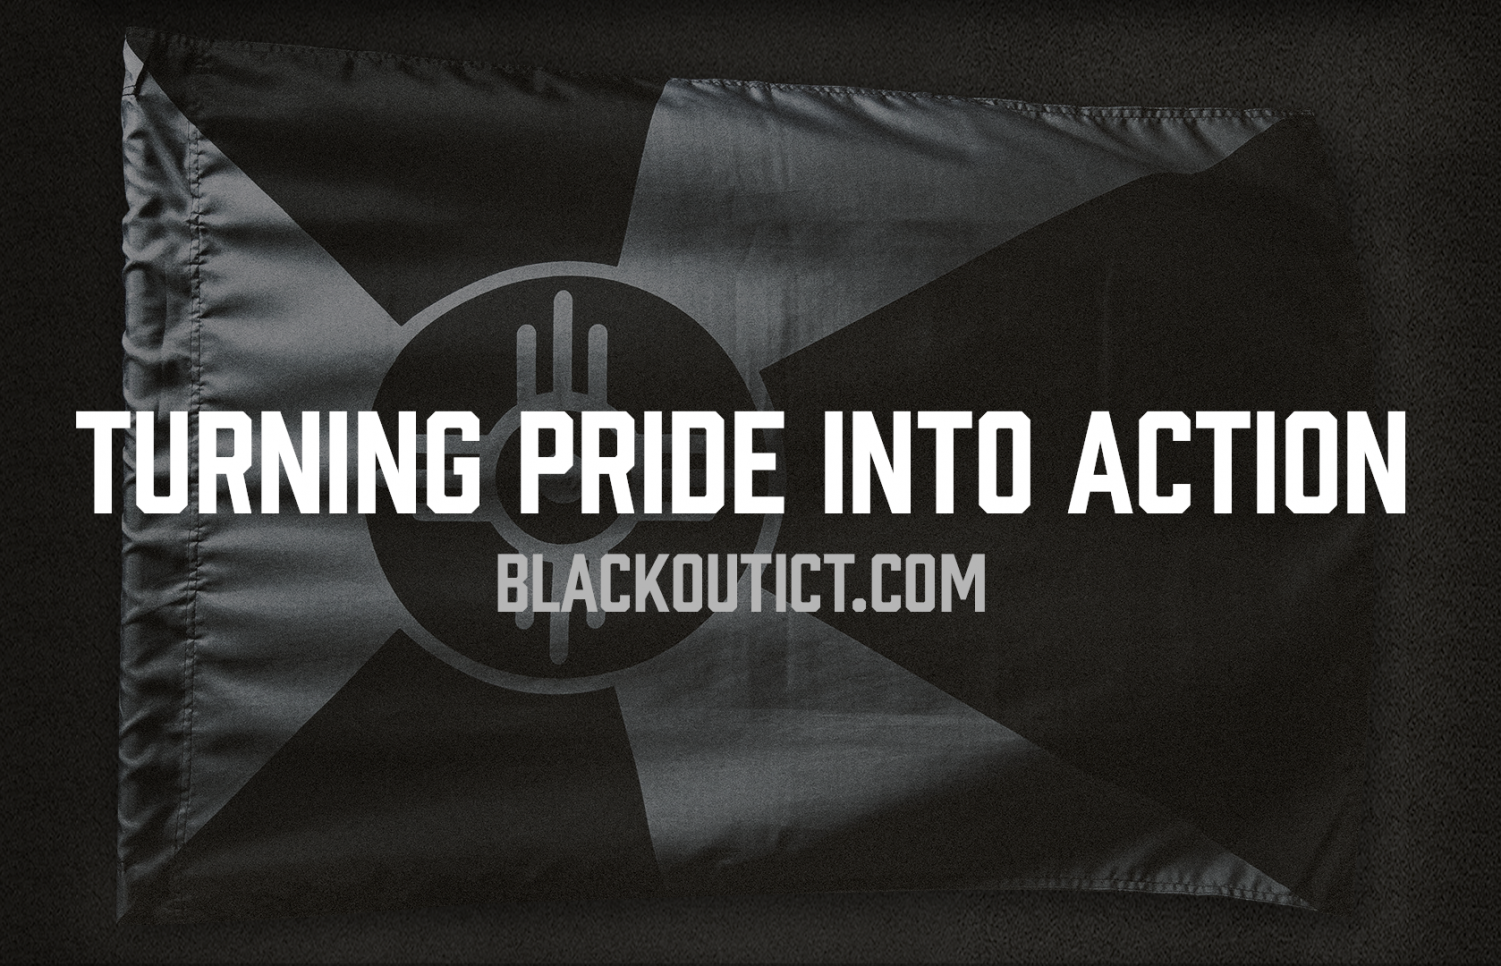 #BlackoutICT social media images are available for free on Blackout ICT's website, which encourages Wichitans to